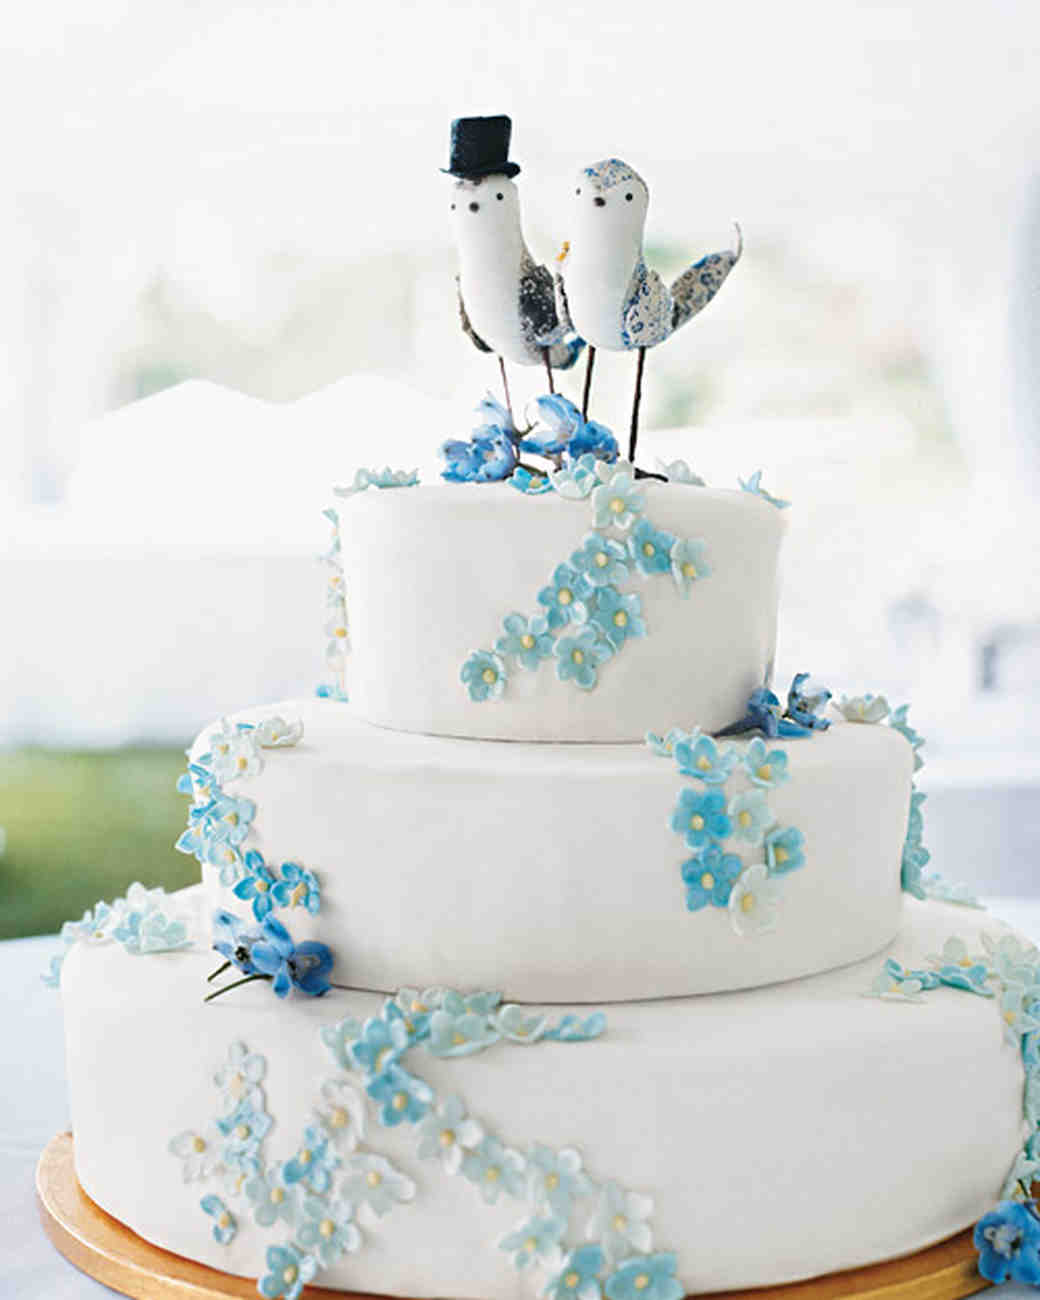 Retro Cake With Blue Flowers